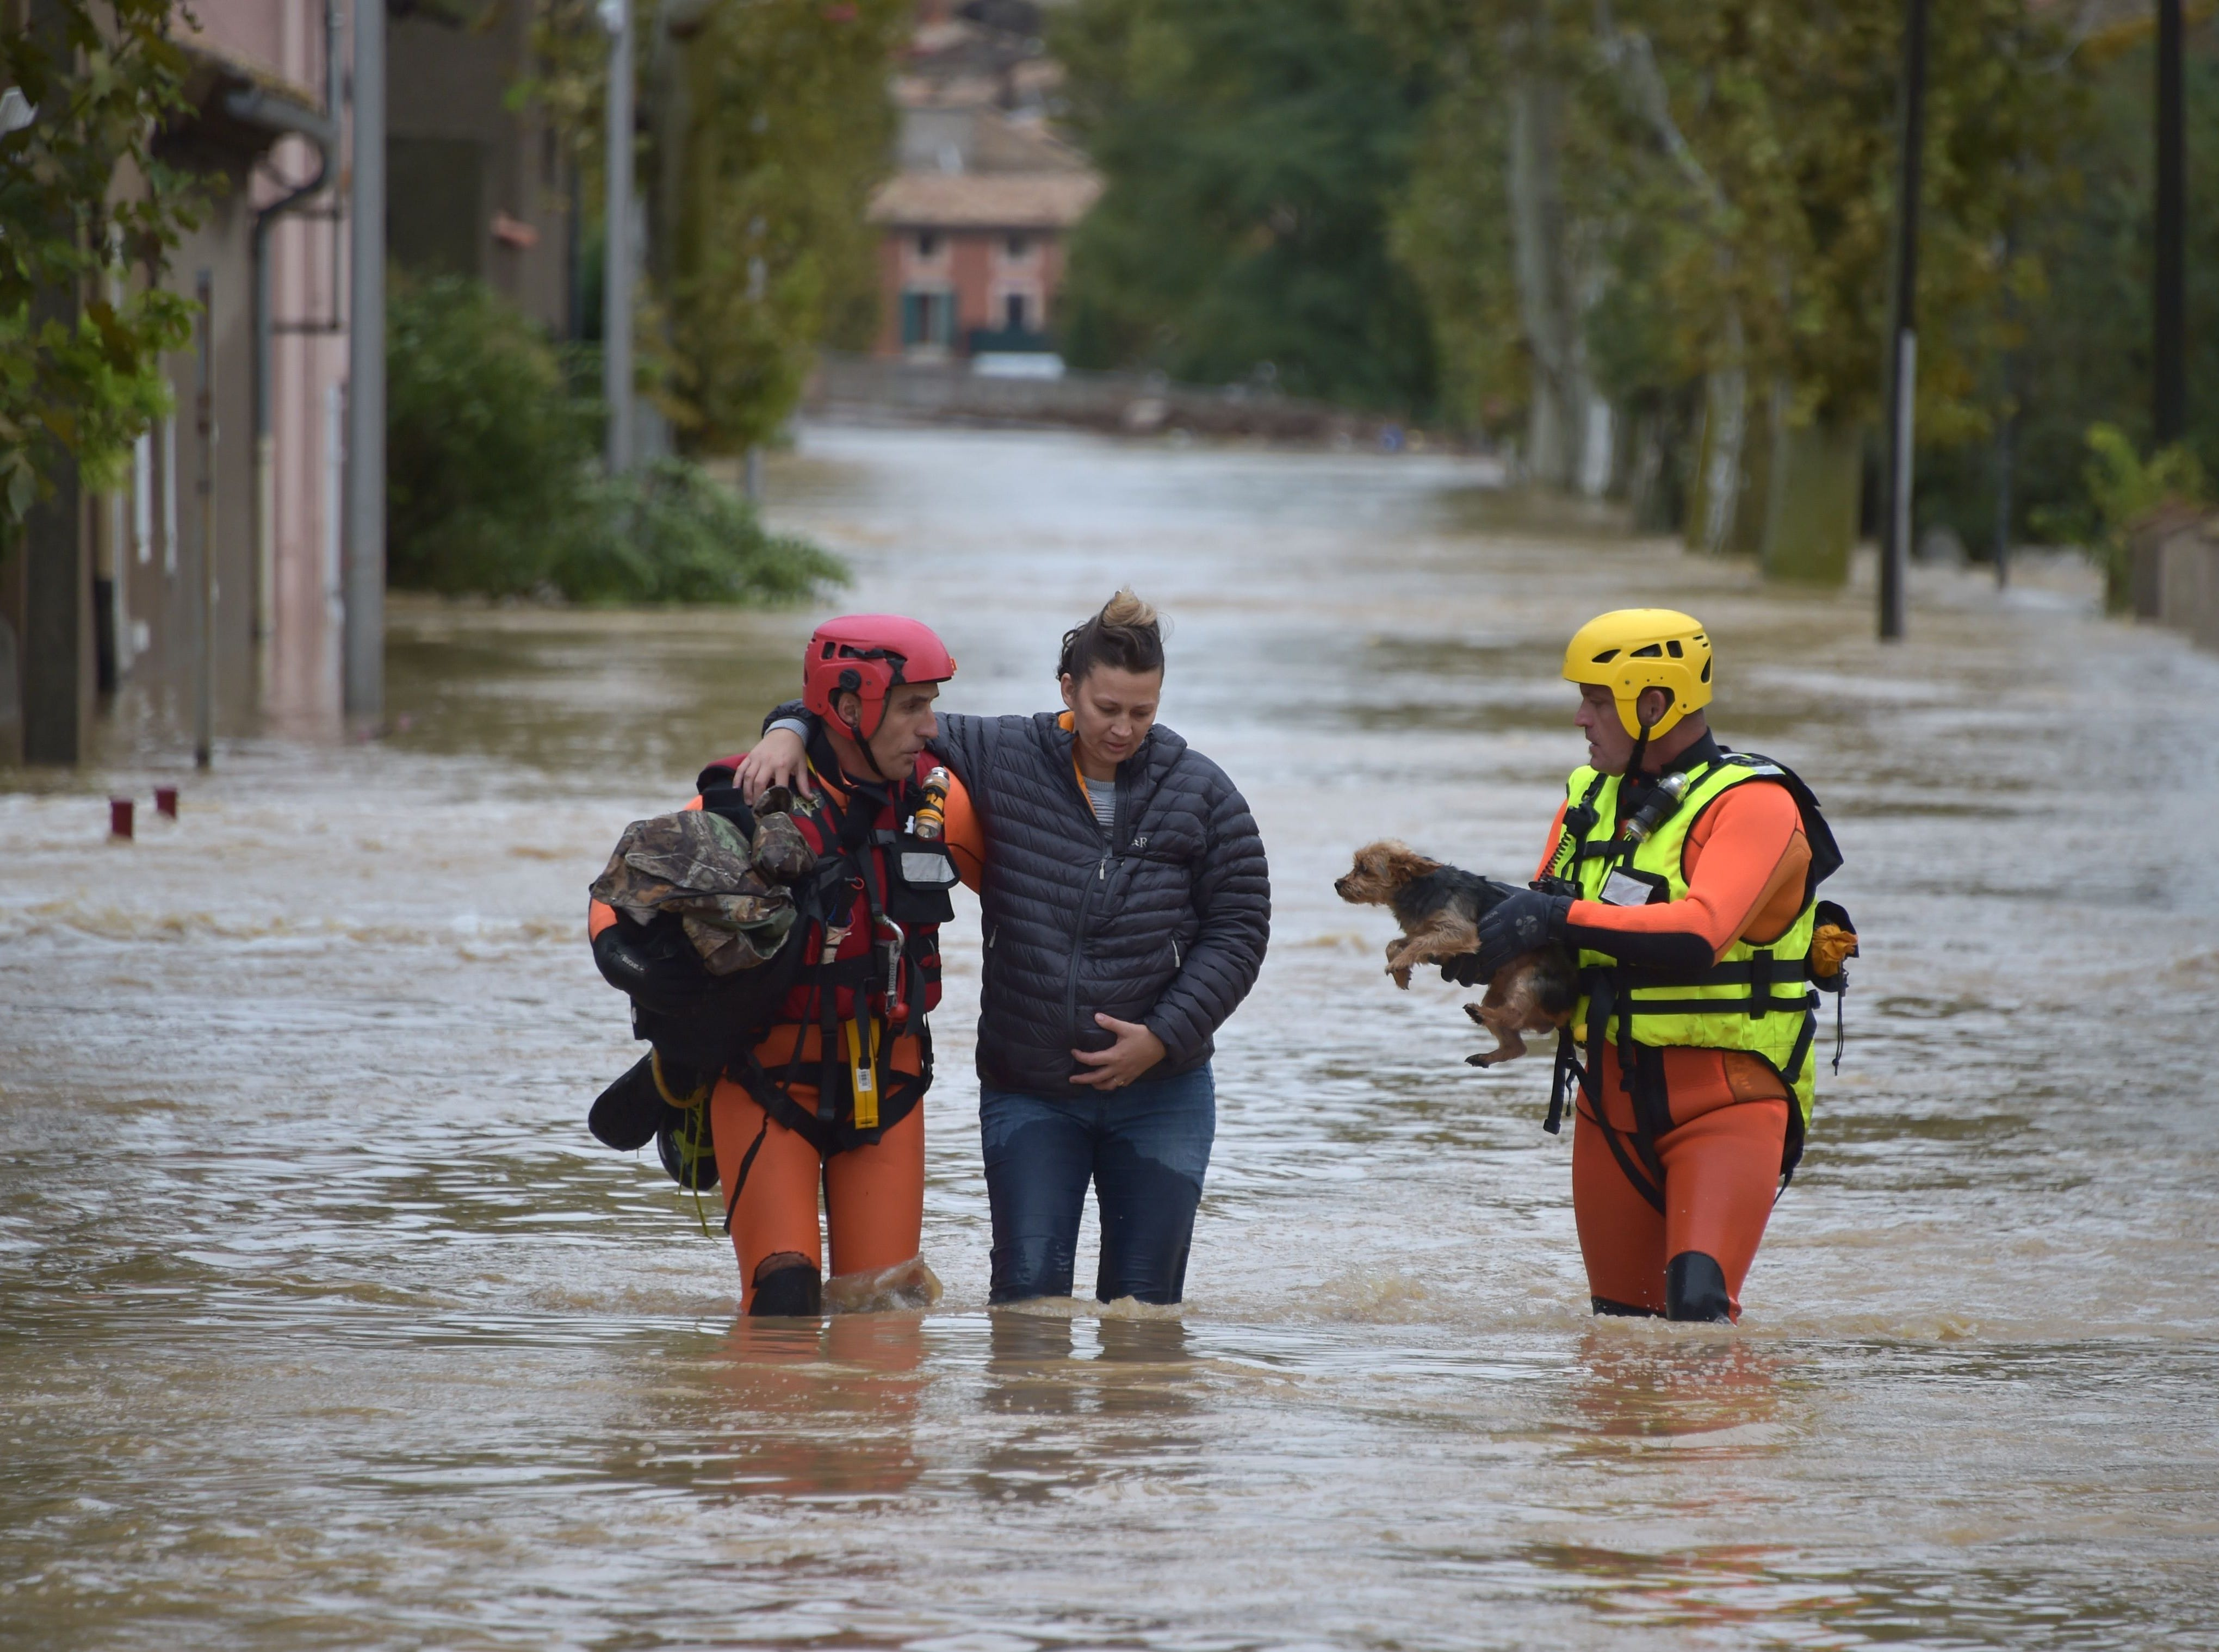 Firefighters help a resident with a dog following heavy rains that saw rivers bursting banks on Oct. 15, 2018 in Trebes, near Carcassone, France.